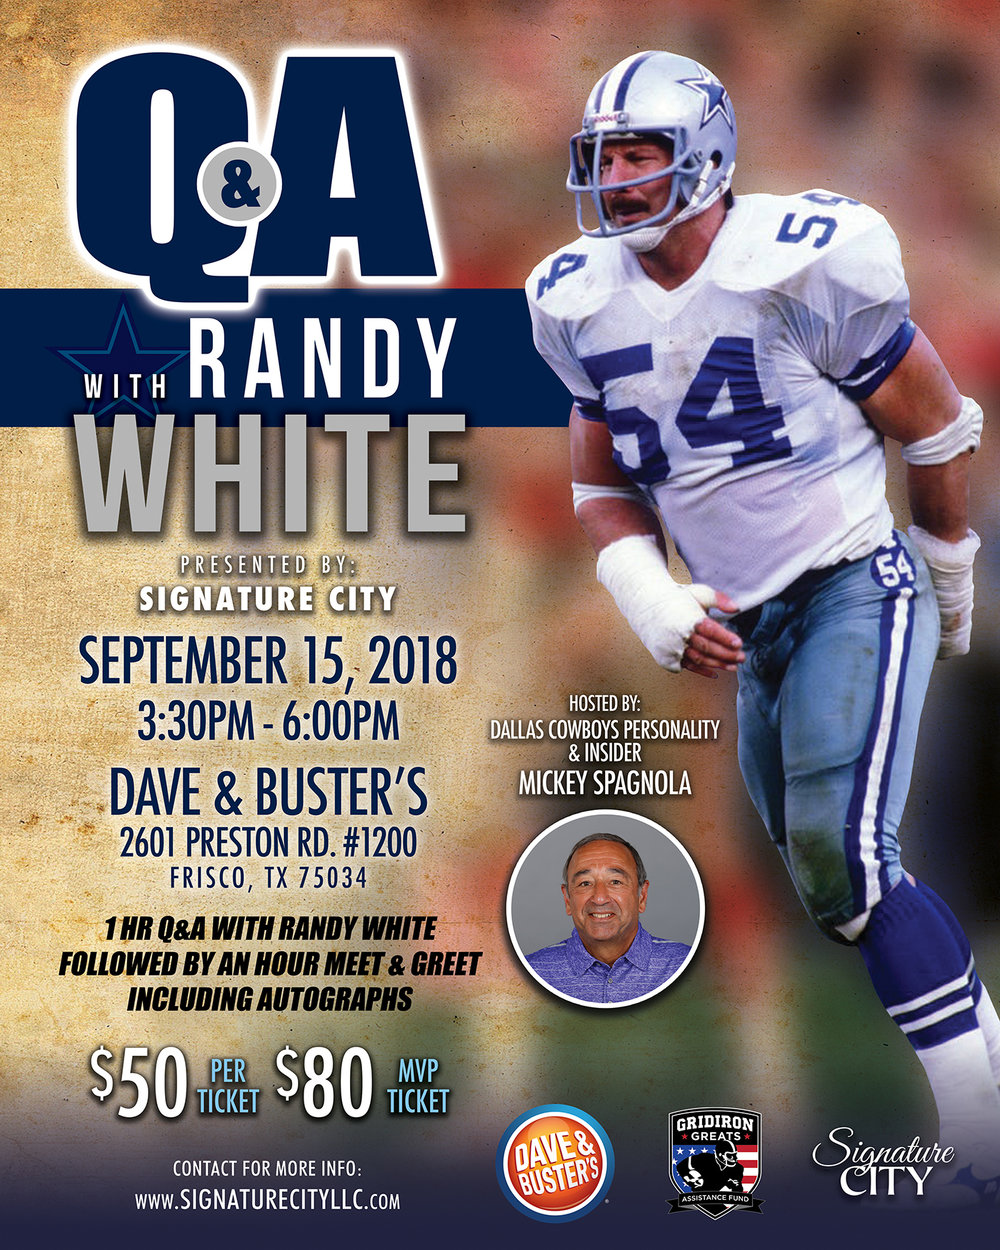 Randy white dallas cowboys great crave the auto dallas cowboys ring of honor 2 first team all american 1973 1974 lombardi award 1974 outland trophy 1974 upi lineman of the year 1974 m4hsunfo